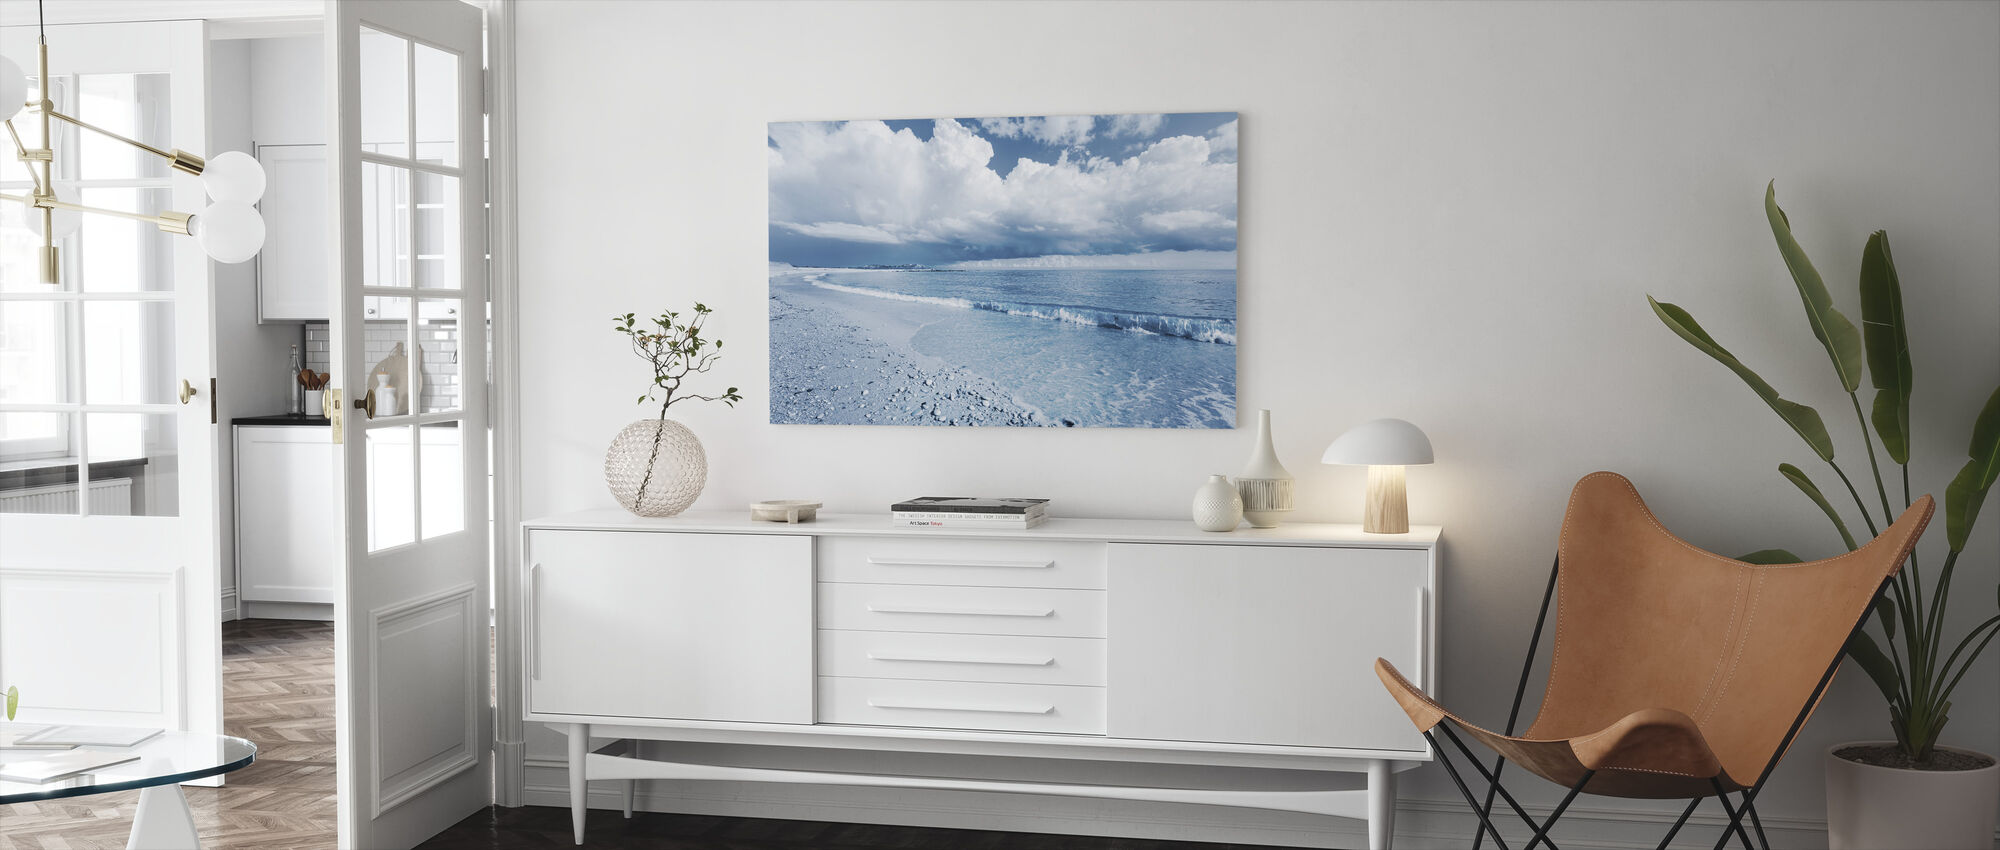 Blue Sea with Dramatic Clouds - Canvas print - Living Room